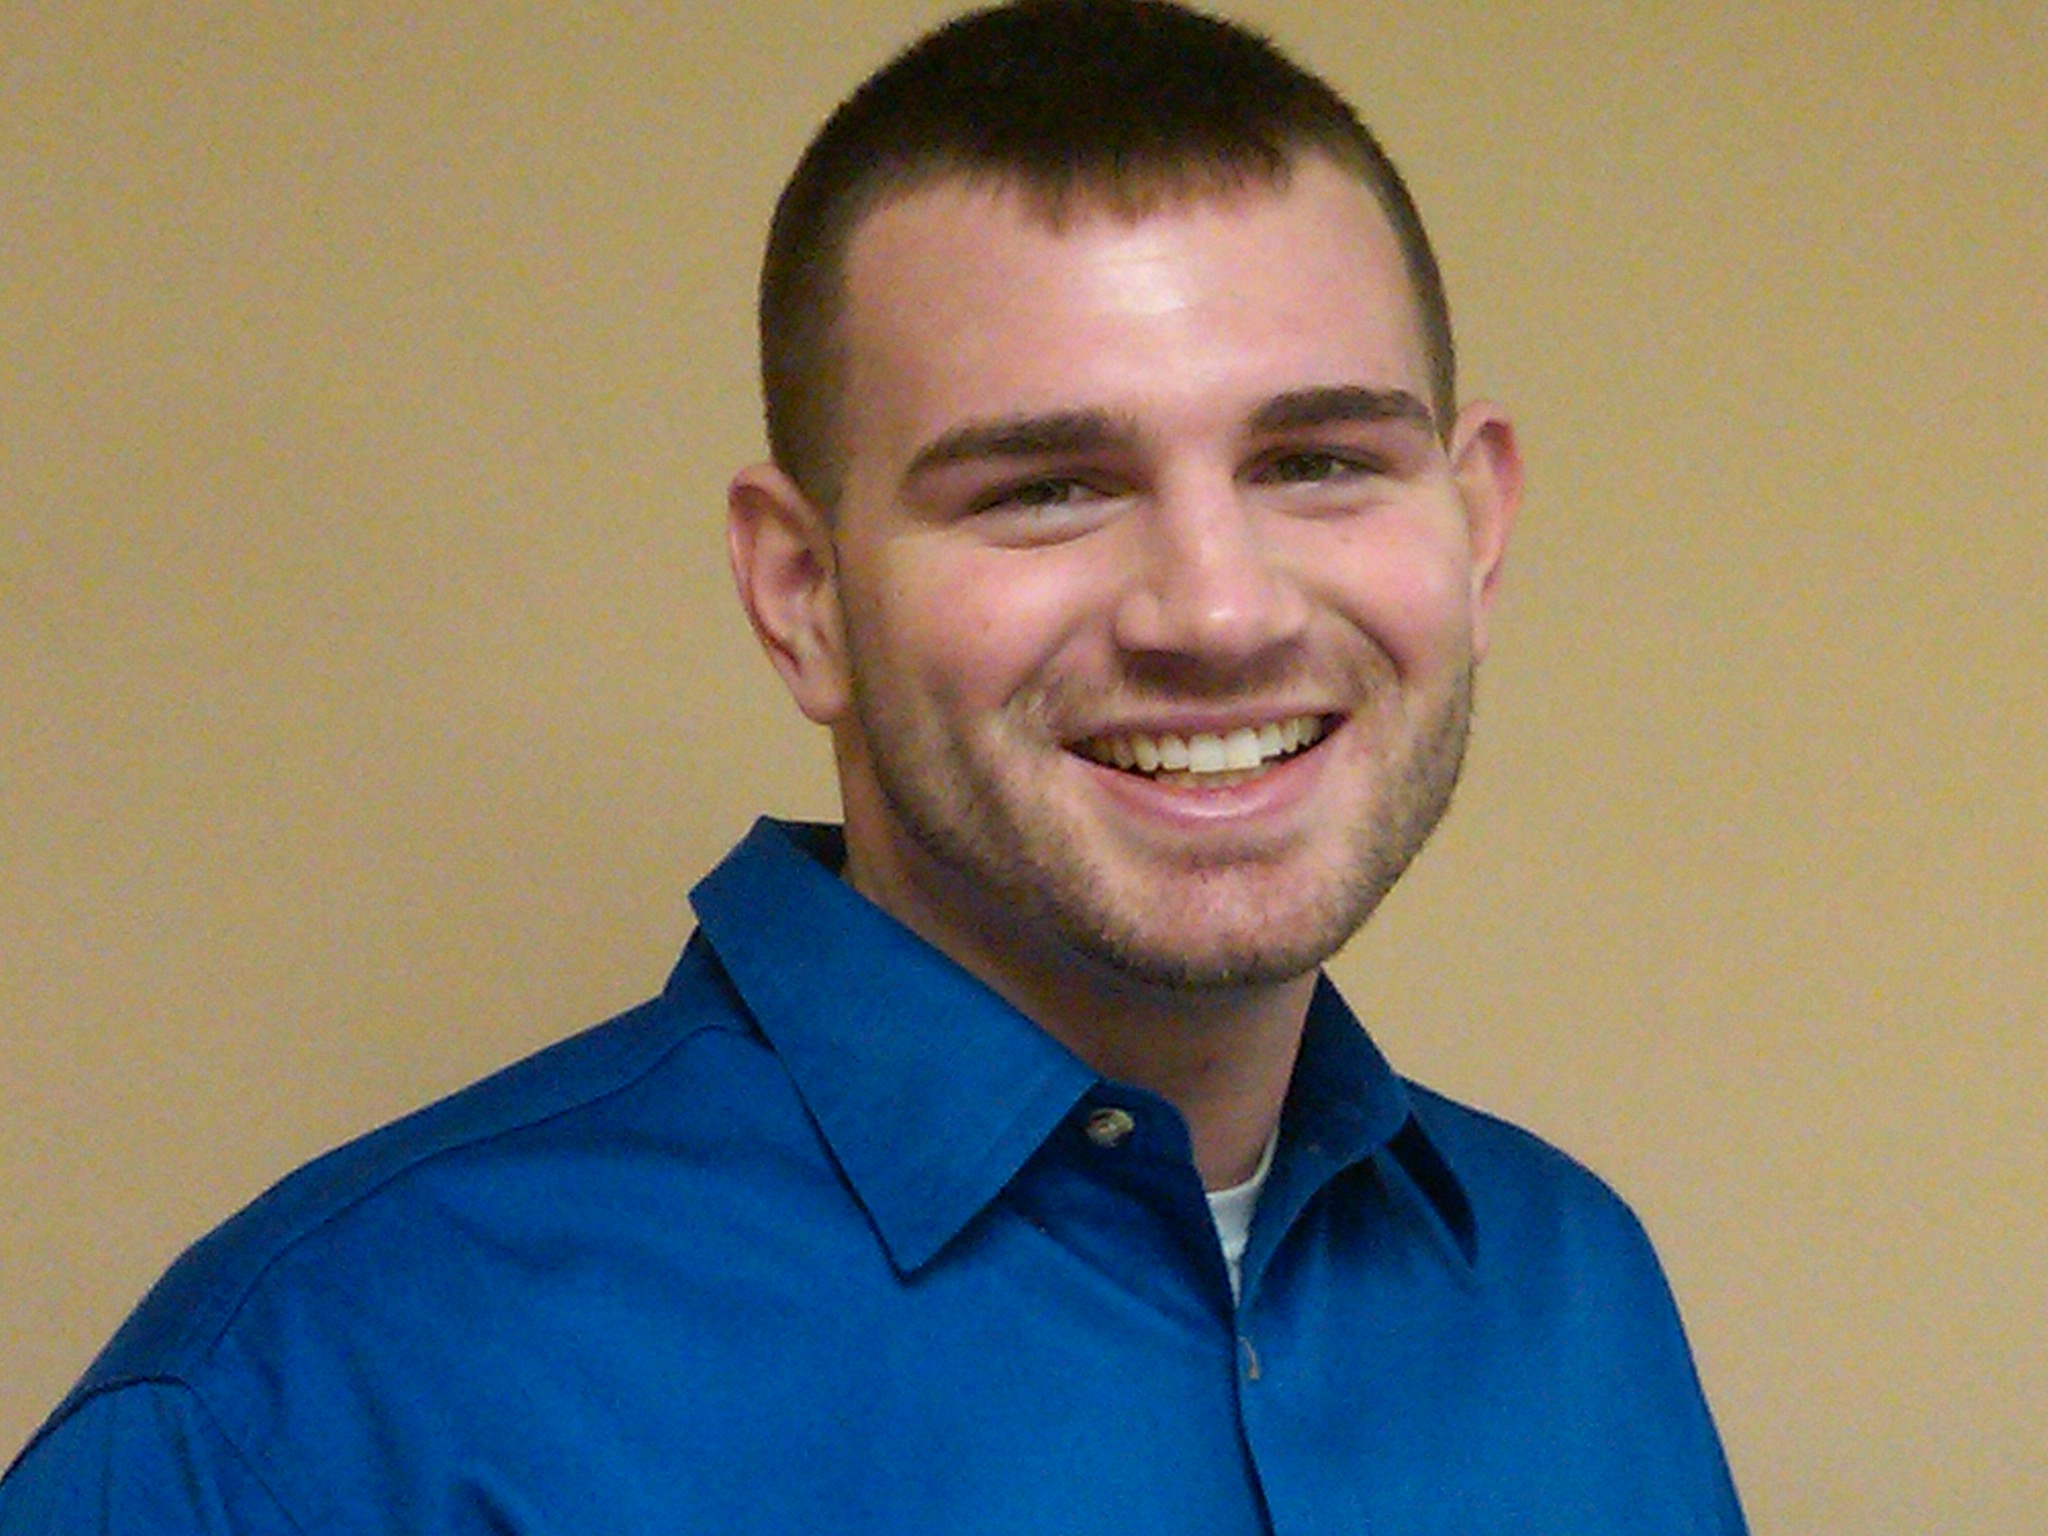 Brian Barresi - Assistant Project Manager